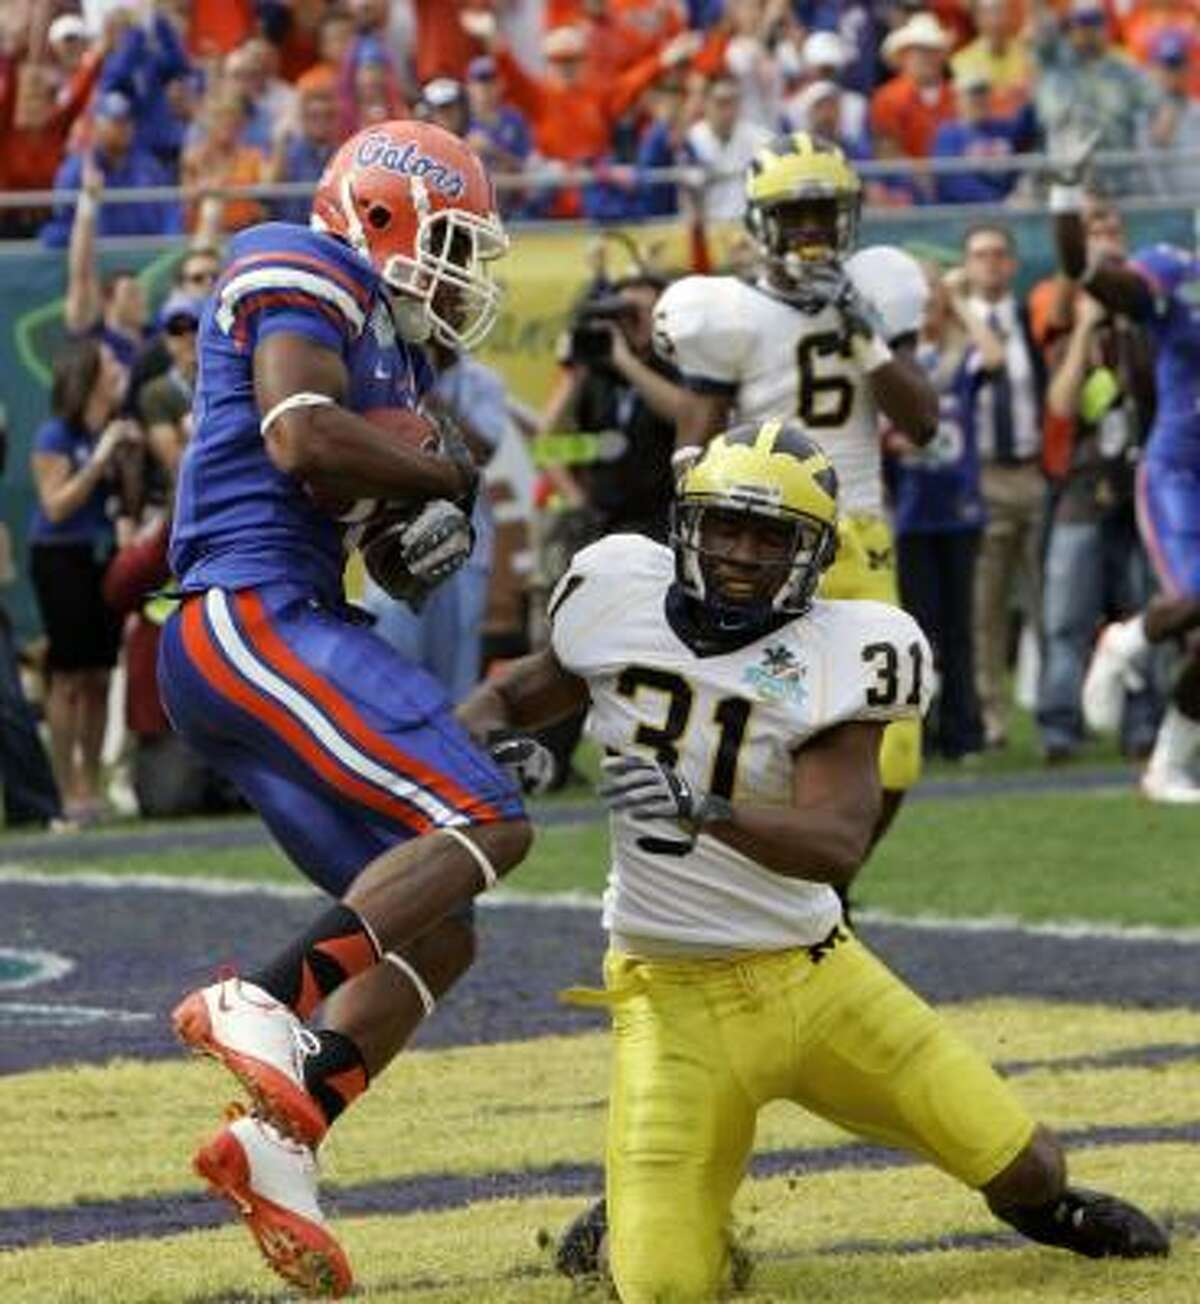 2006: Percy Harvinpictured), WR, Florida (Rivals); Myron Rolle, DB, Florida State (ESPN); Beanie Wells, RB, Ohio State (Scout). Harvin helped the Gators win two national championships in three seasons before heading to the NFL, and Wells was tremendous as well, rushing for nearly 3,400 yards in three years with the Buckeyes. But the most unique path of any top-ranked recruit may belong to Rolle, who was a third-team All-American as a junior. He left the Seminoles not for the NFL draft, but for Oxford University after being named a Rhodes Scholar. Rolle earned a master's degree in medical anthropology, and although he never did play a game in the NFL, he was drafted by the Tennessee Titans in 2010 and was picked up by the Pittsburgh Steelers in 2012.